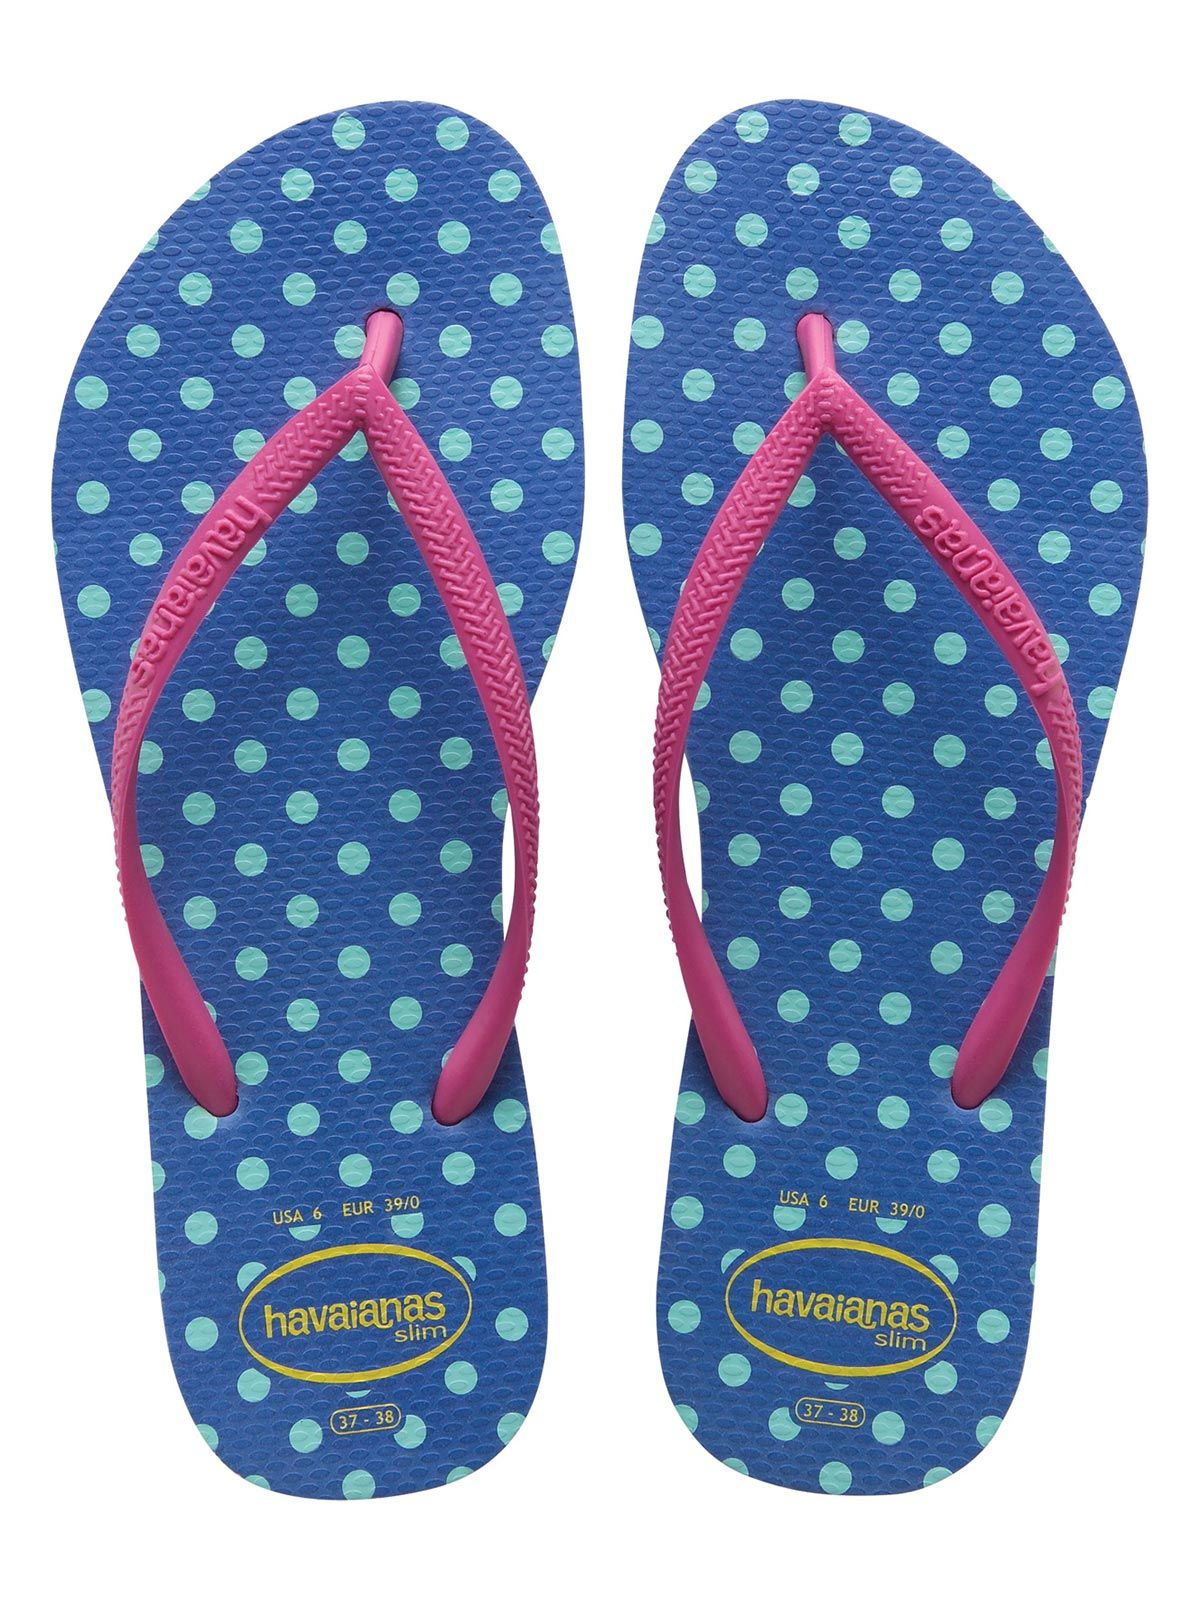 b6512850862e49 Zehentrenner Havaianas Slim Fresh Light Blue - Havaianas - Brazilian Bikini  Shop  brazilianbikinishop  BBSFashion  zehentrenner  havaianas